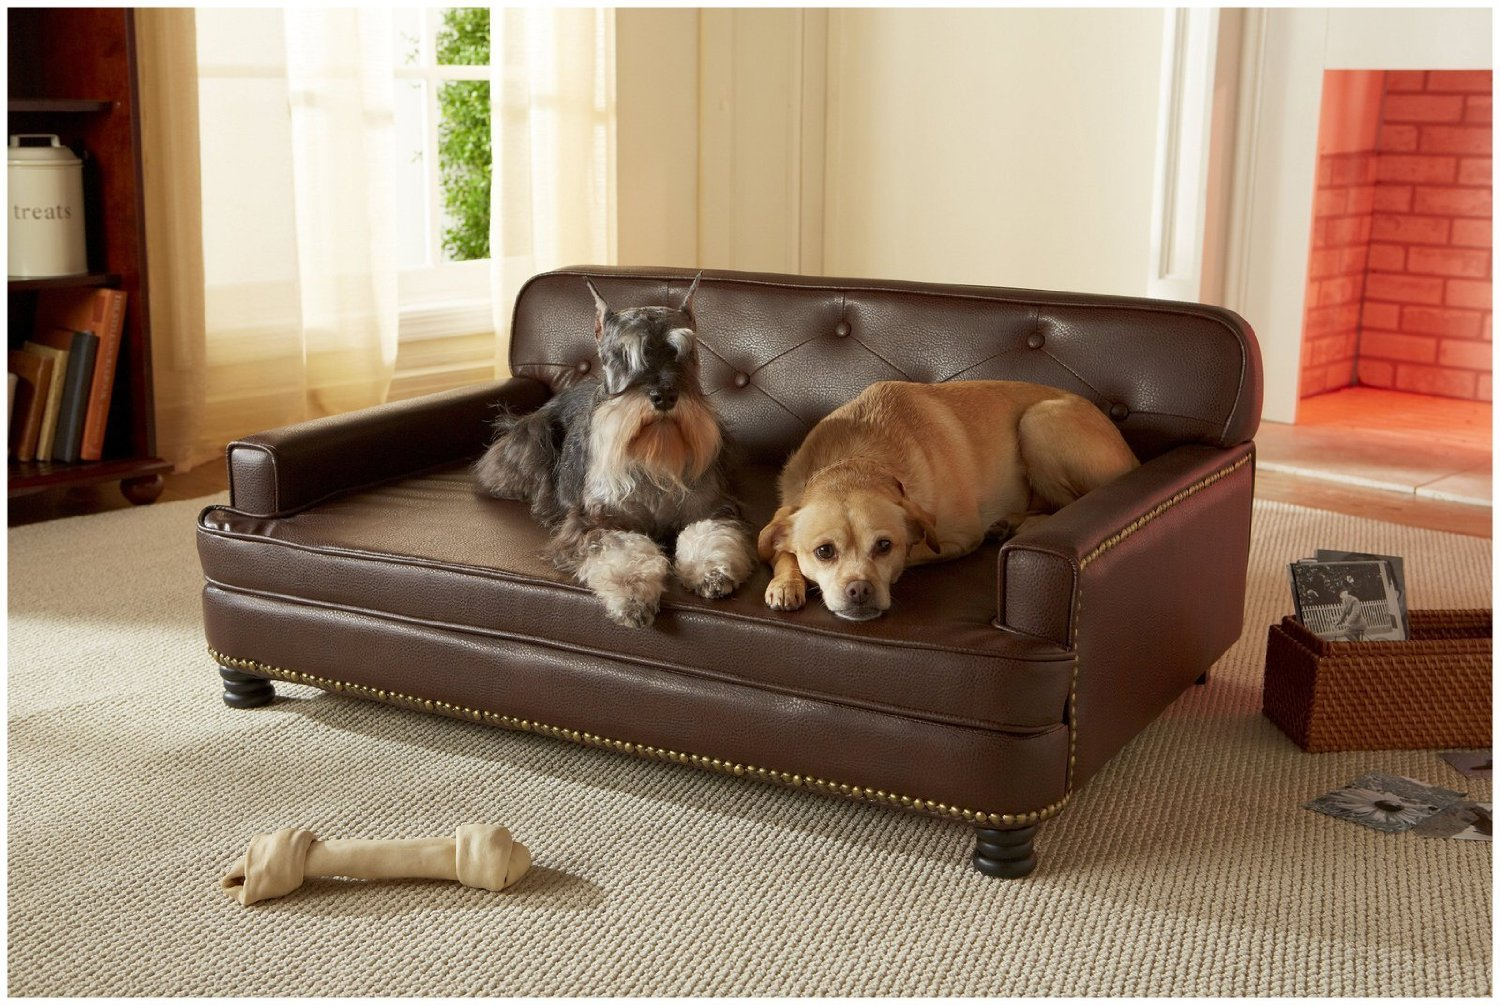 total fab luxury designer dog beds for small and large dogs. Black Bedroom Furniture Sets. Home Design Ideas